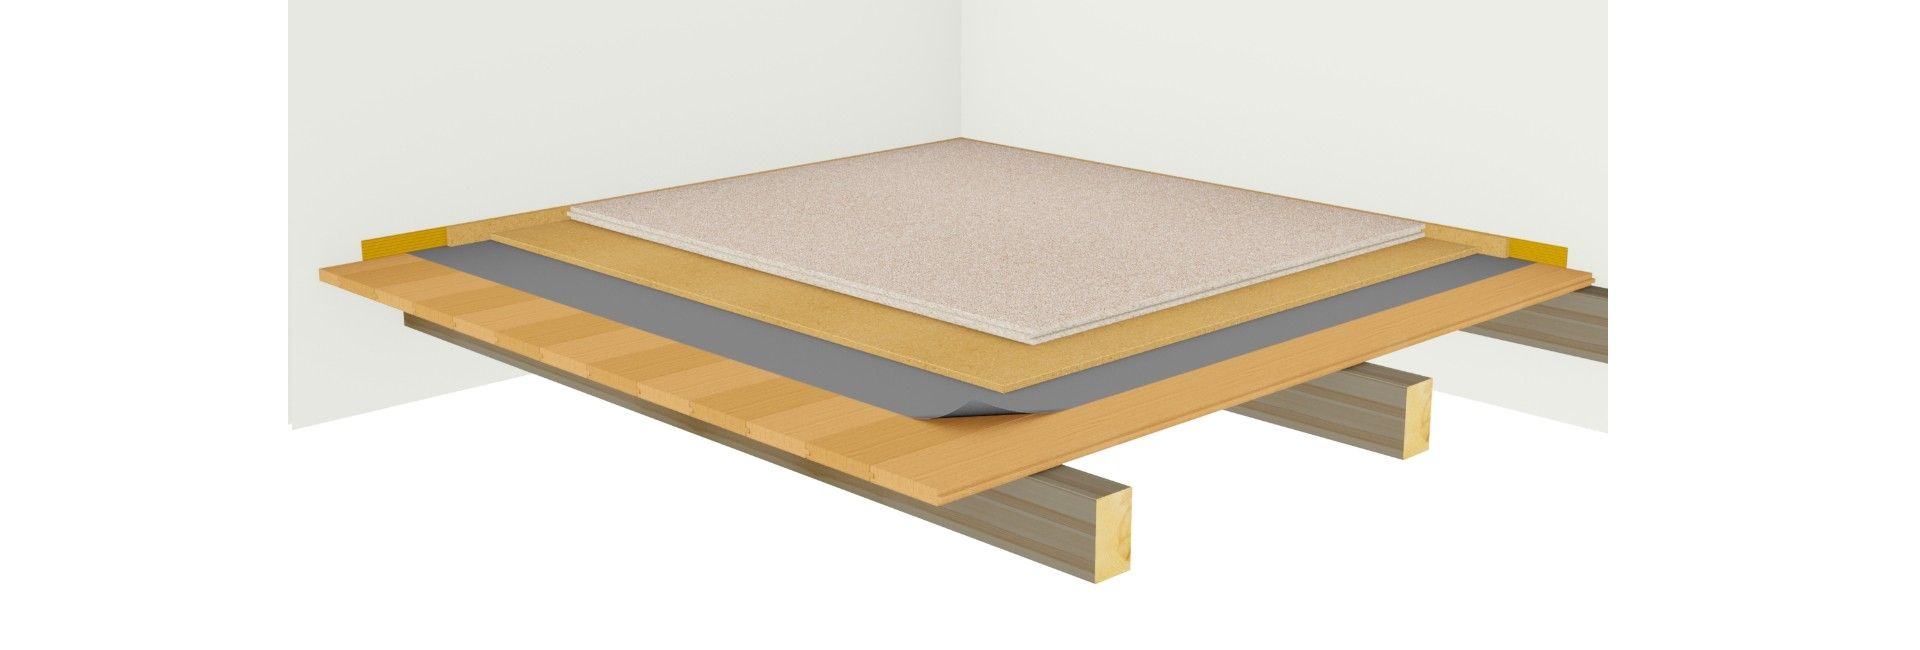 Footfall sound insulation over floorboards